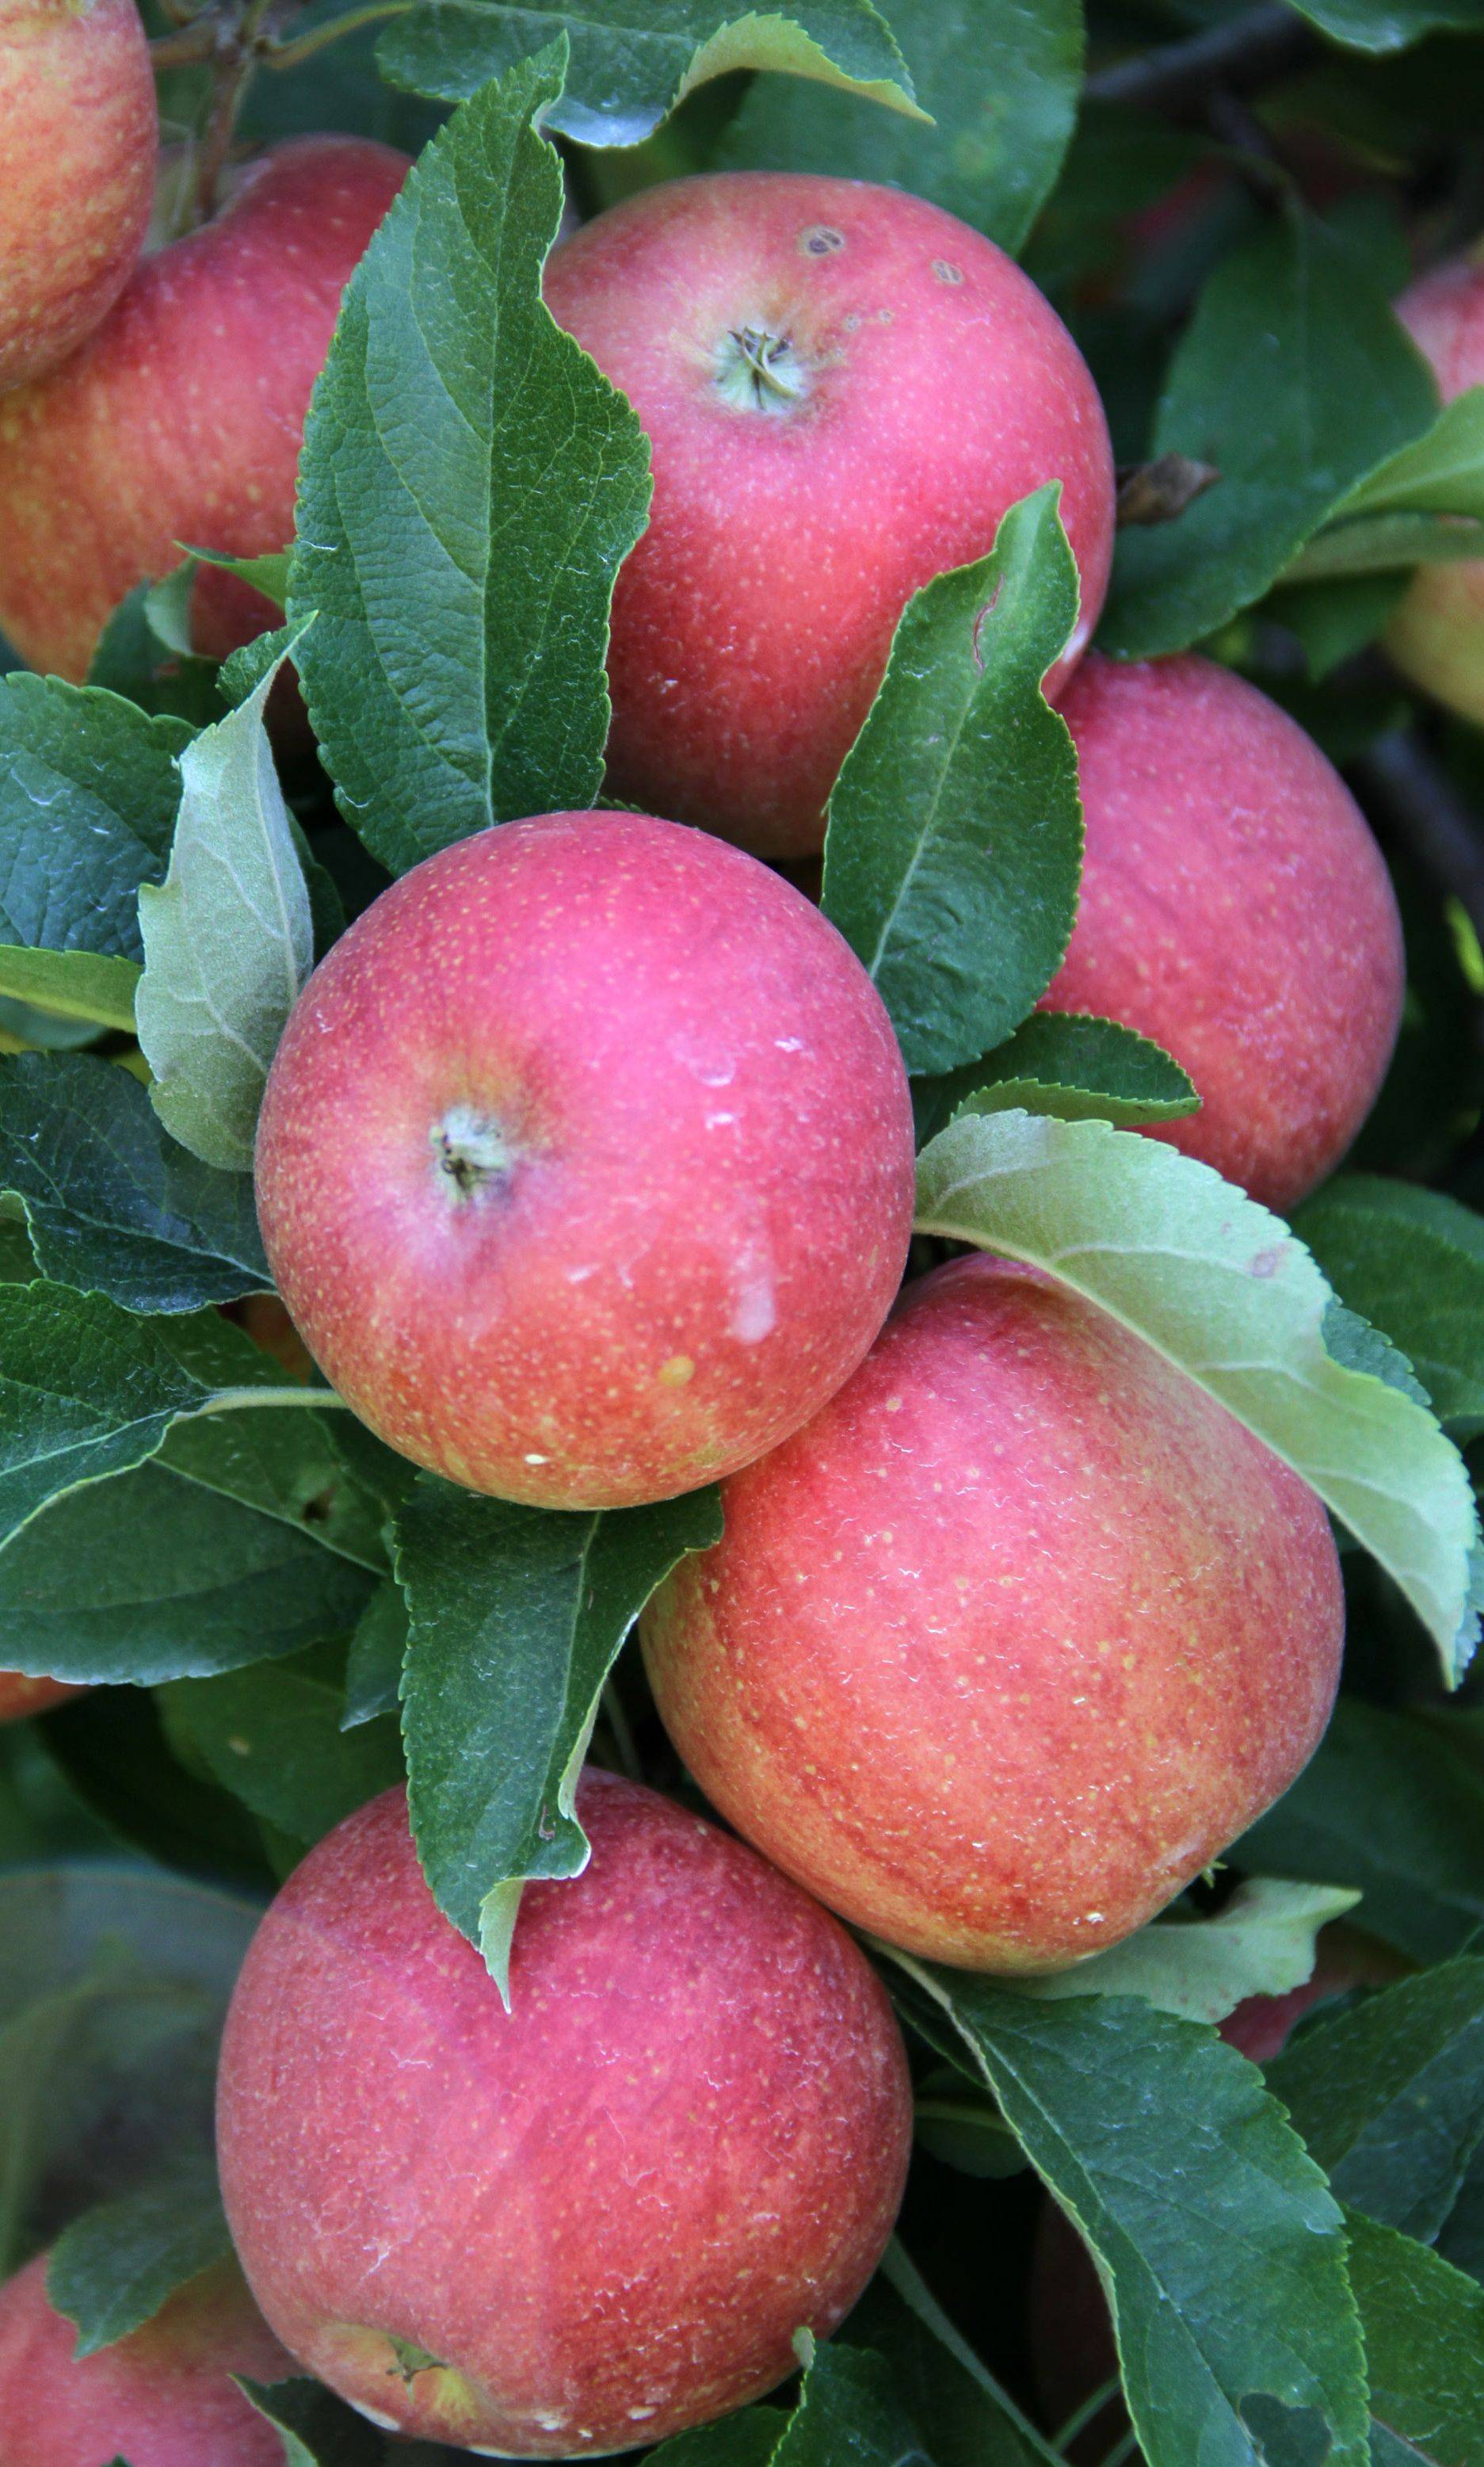 Gala apples are among the varieties available for picking at Homestead Orchard in Woodstock.